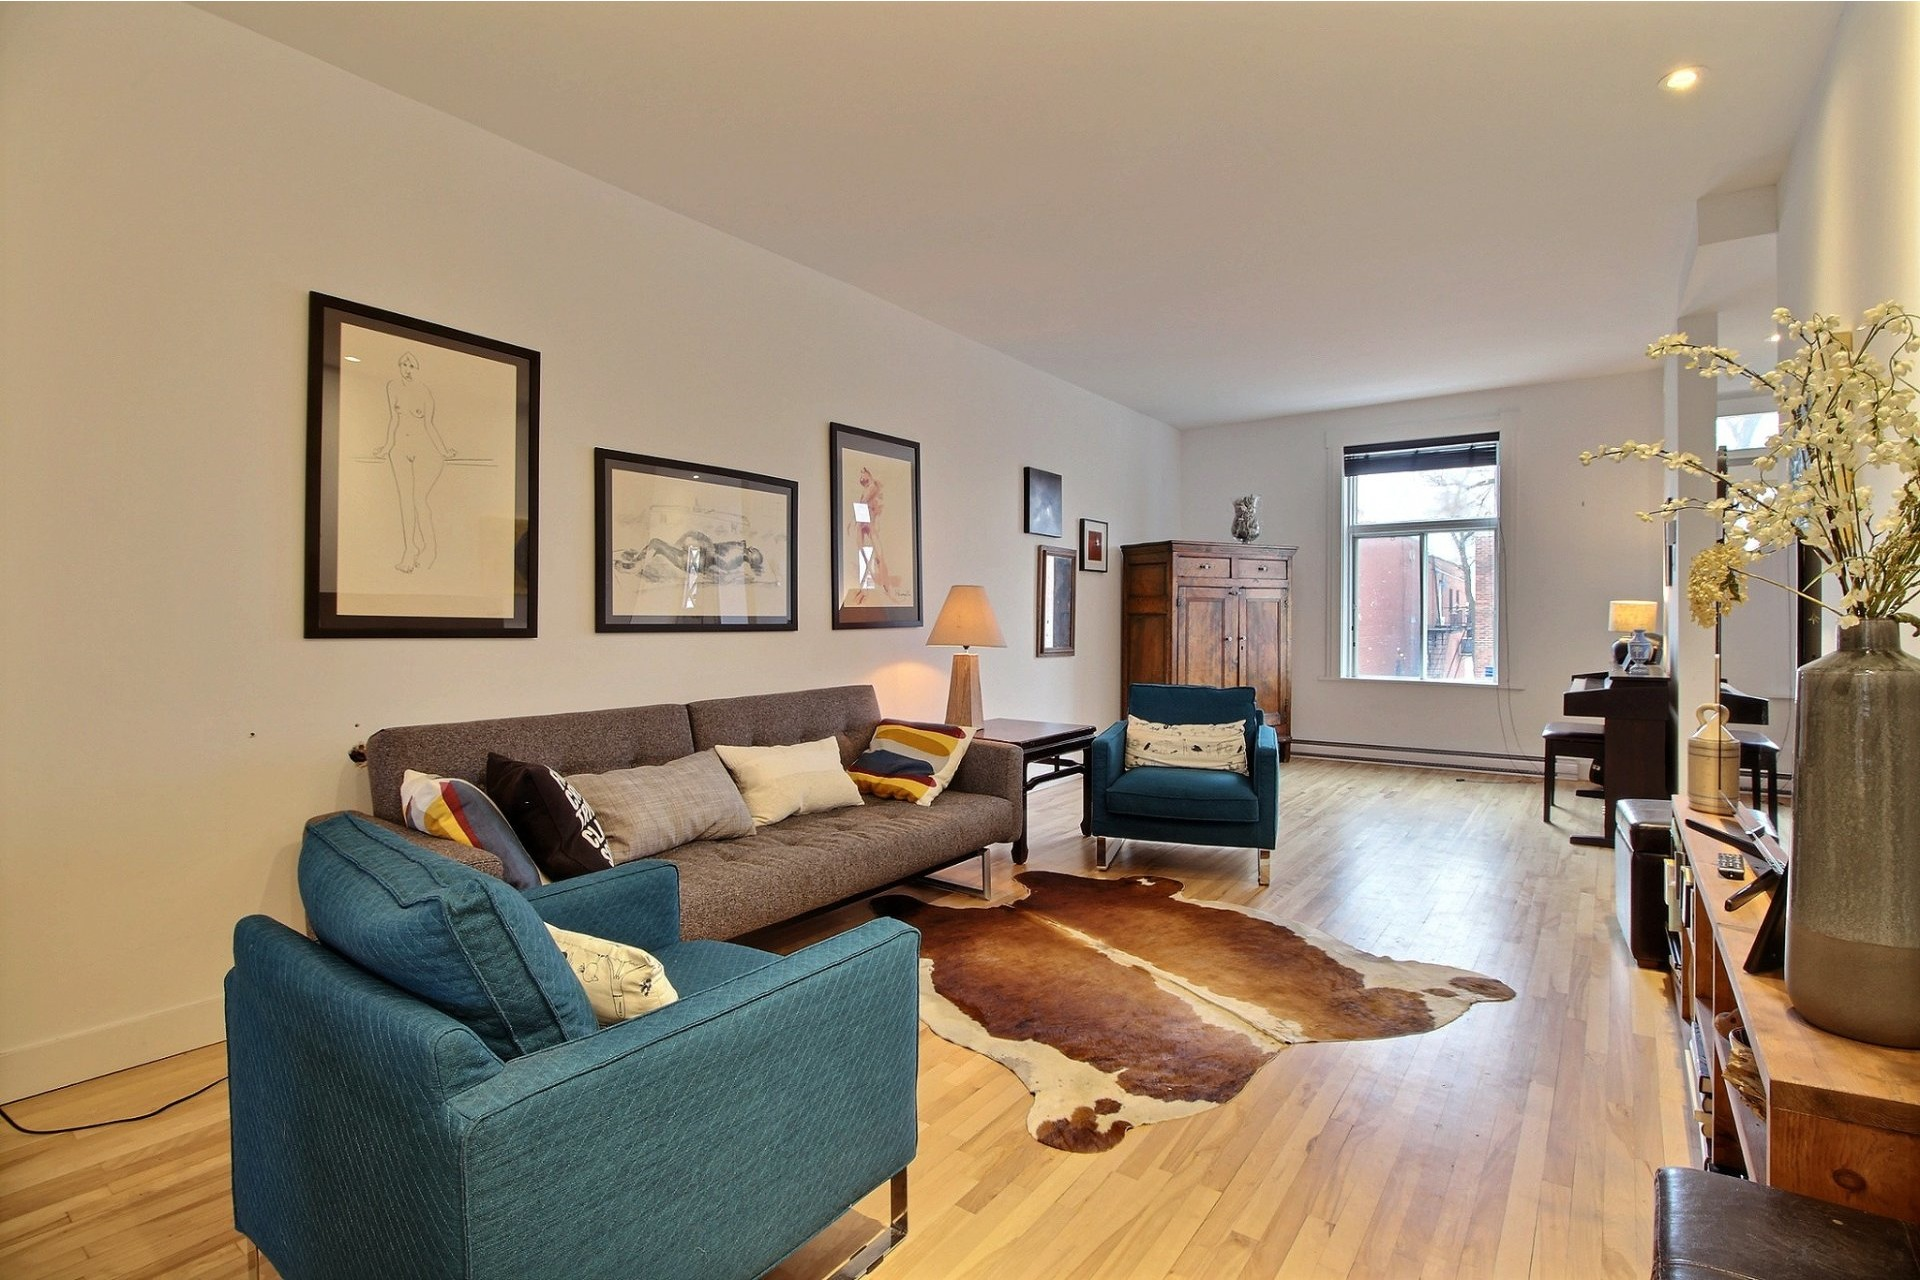 Apartment For rent Montréal Ahuntsic-Cartierville  - 2 rooms